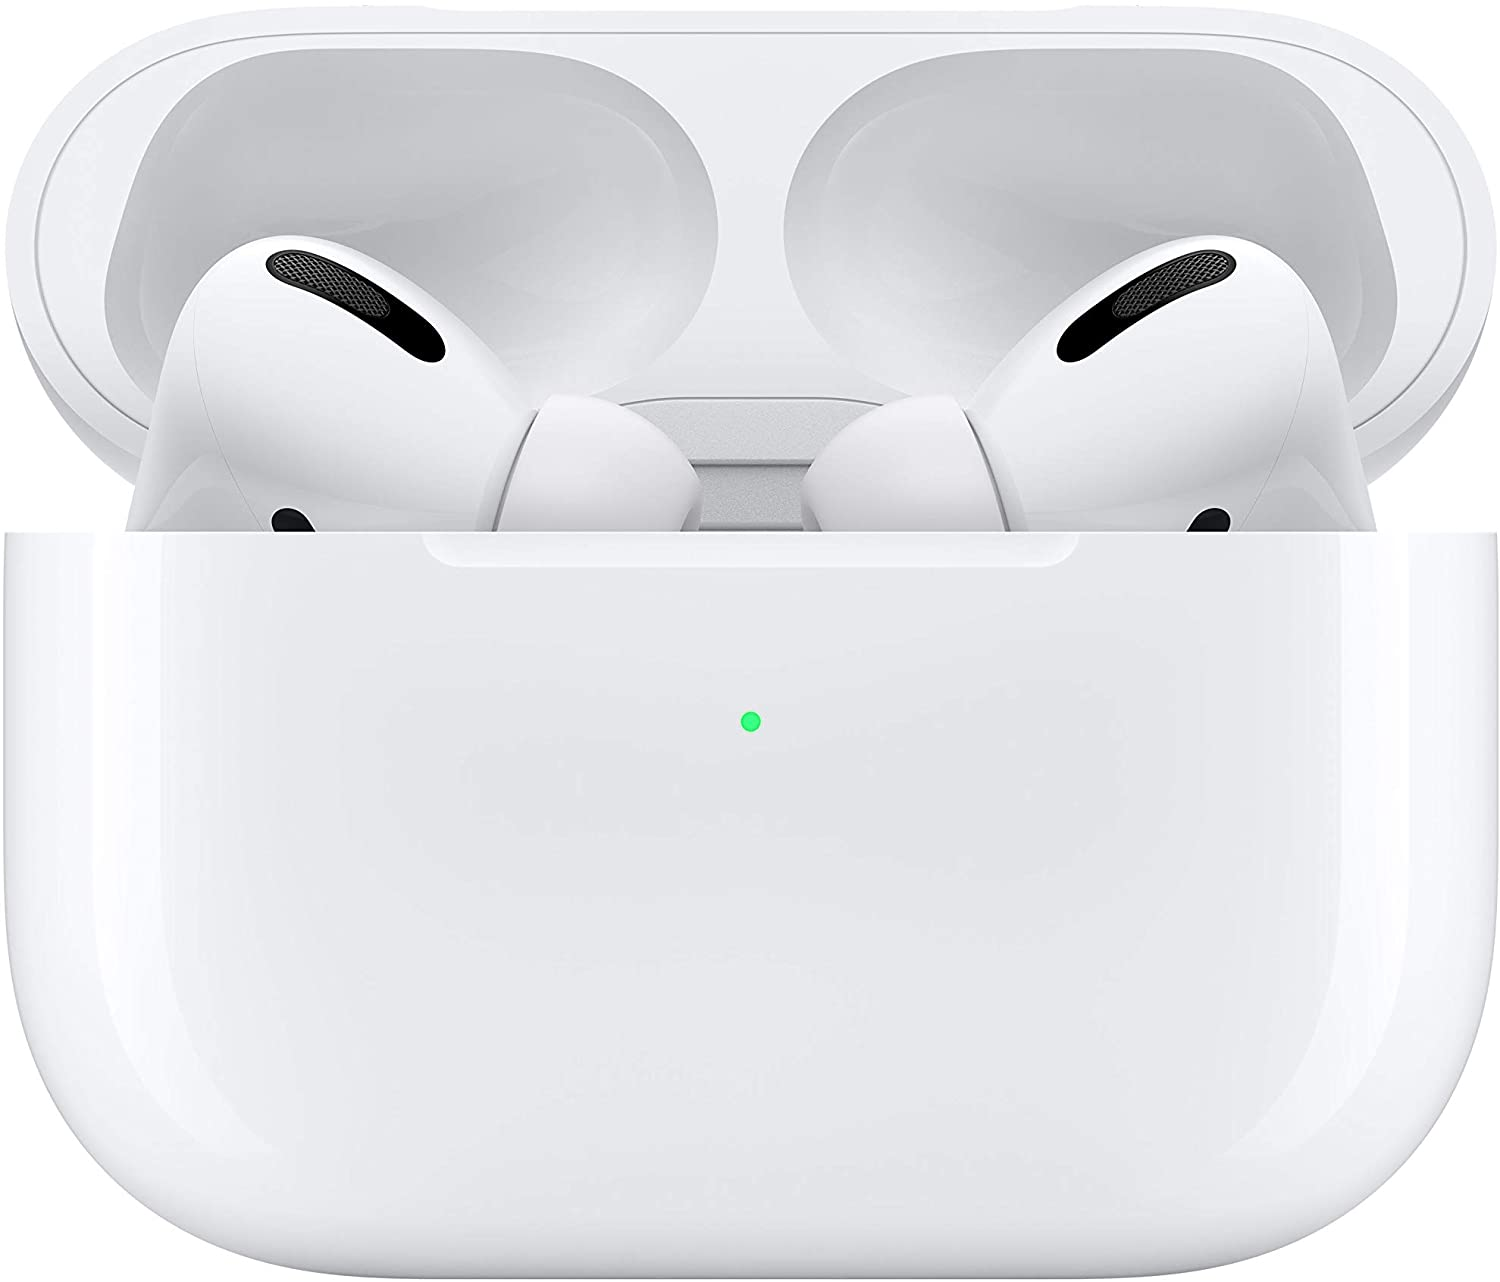 Apple AirPods Pro Visit the Apple Store 4.8 out of 5 stars